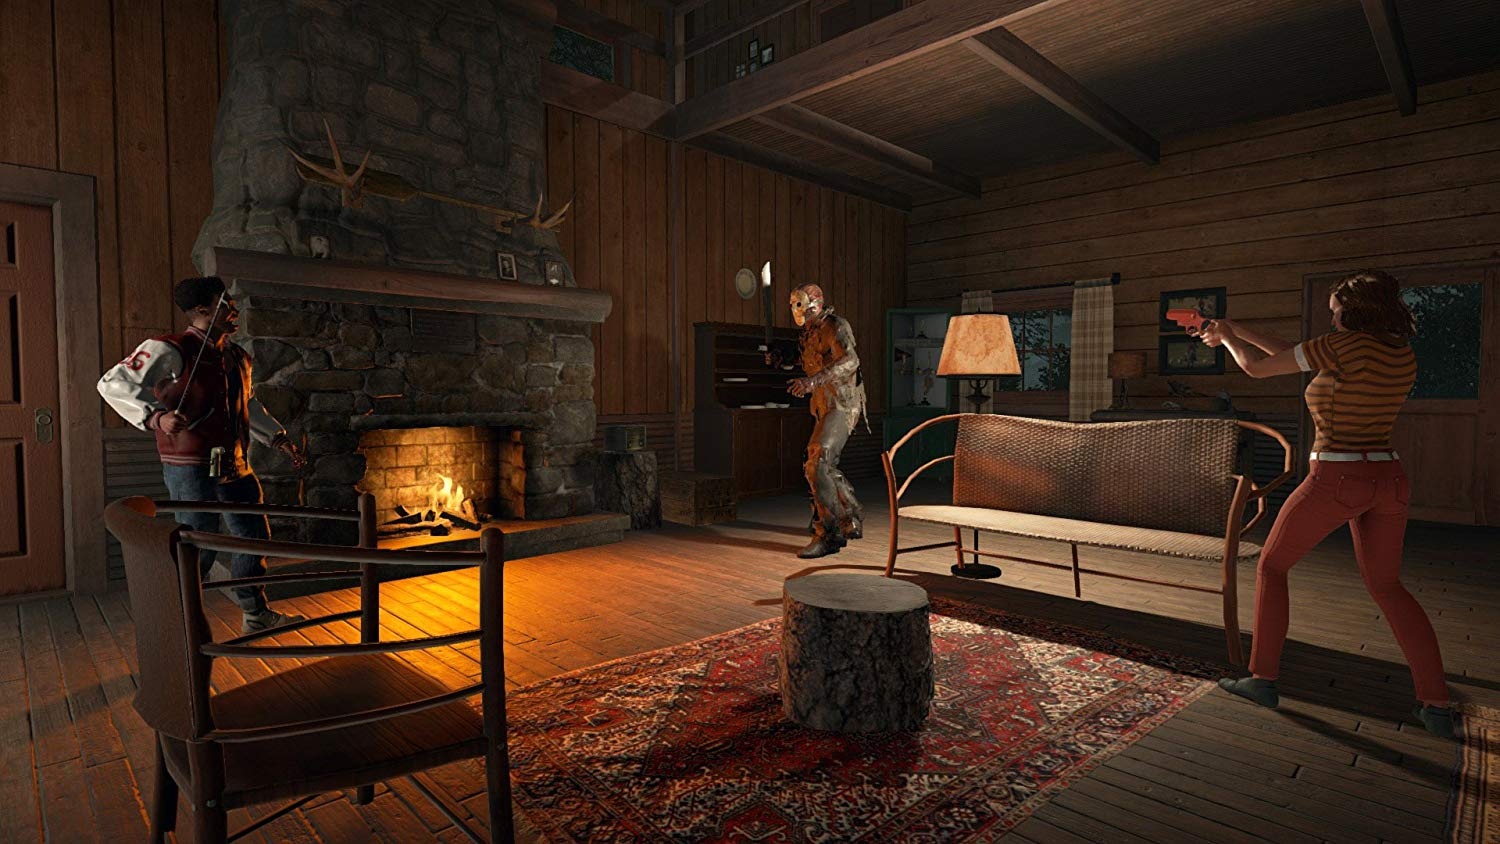 Screenshot from Friday the 13th the game